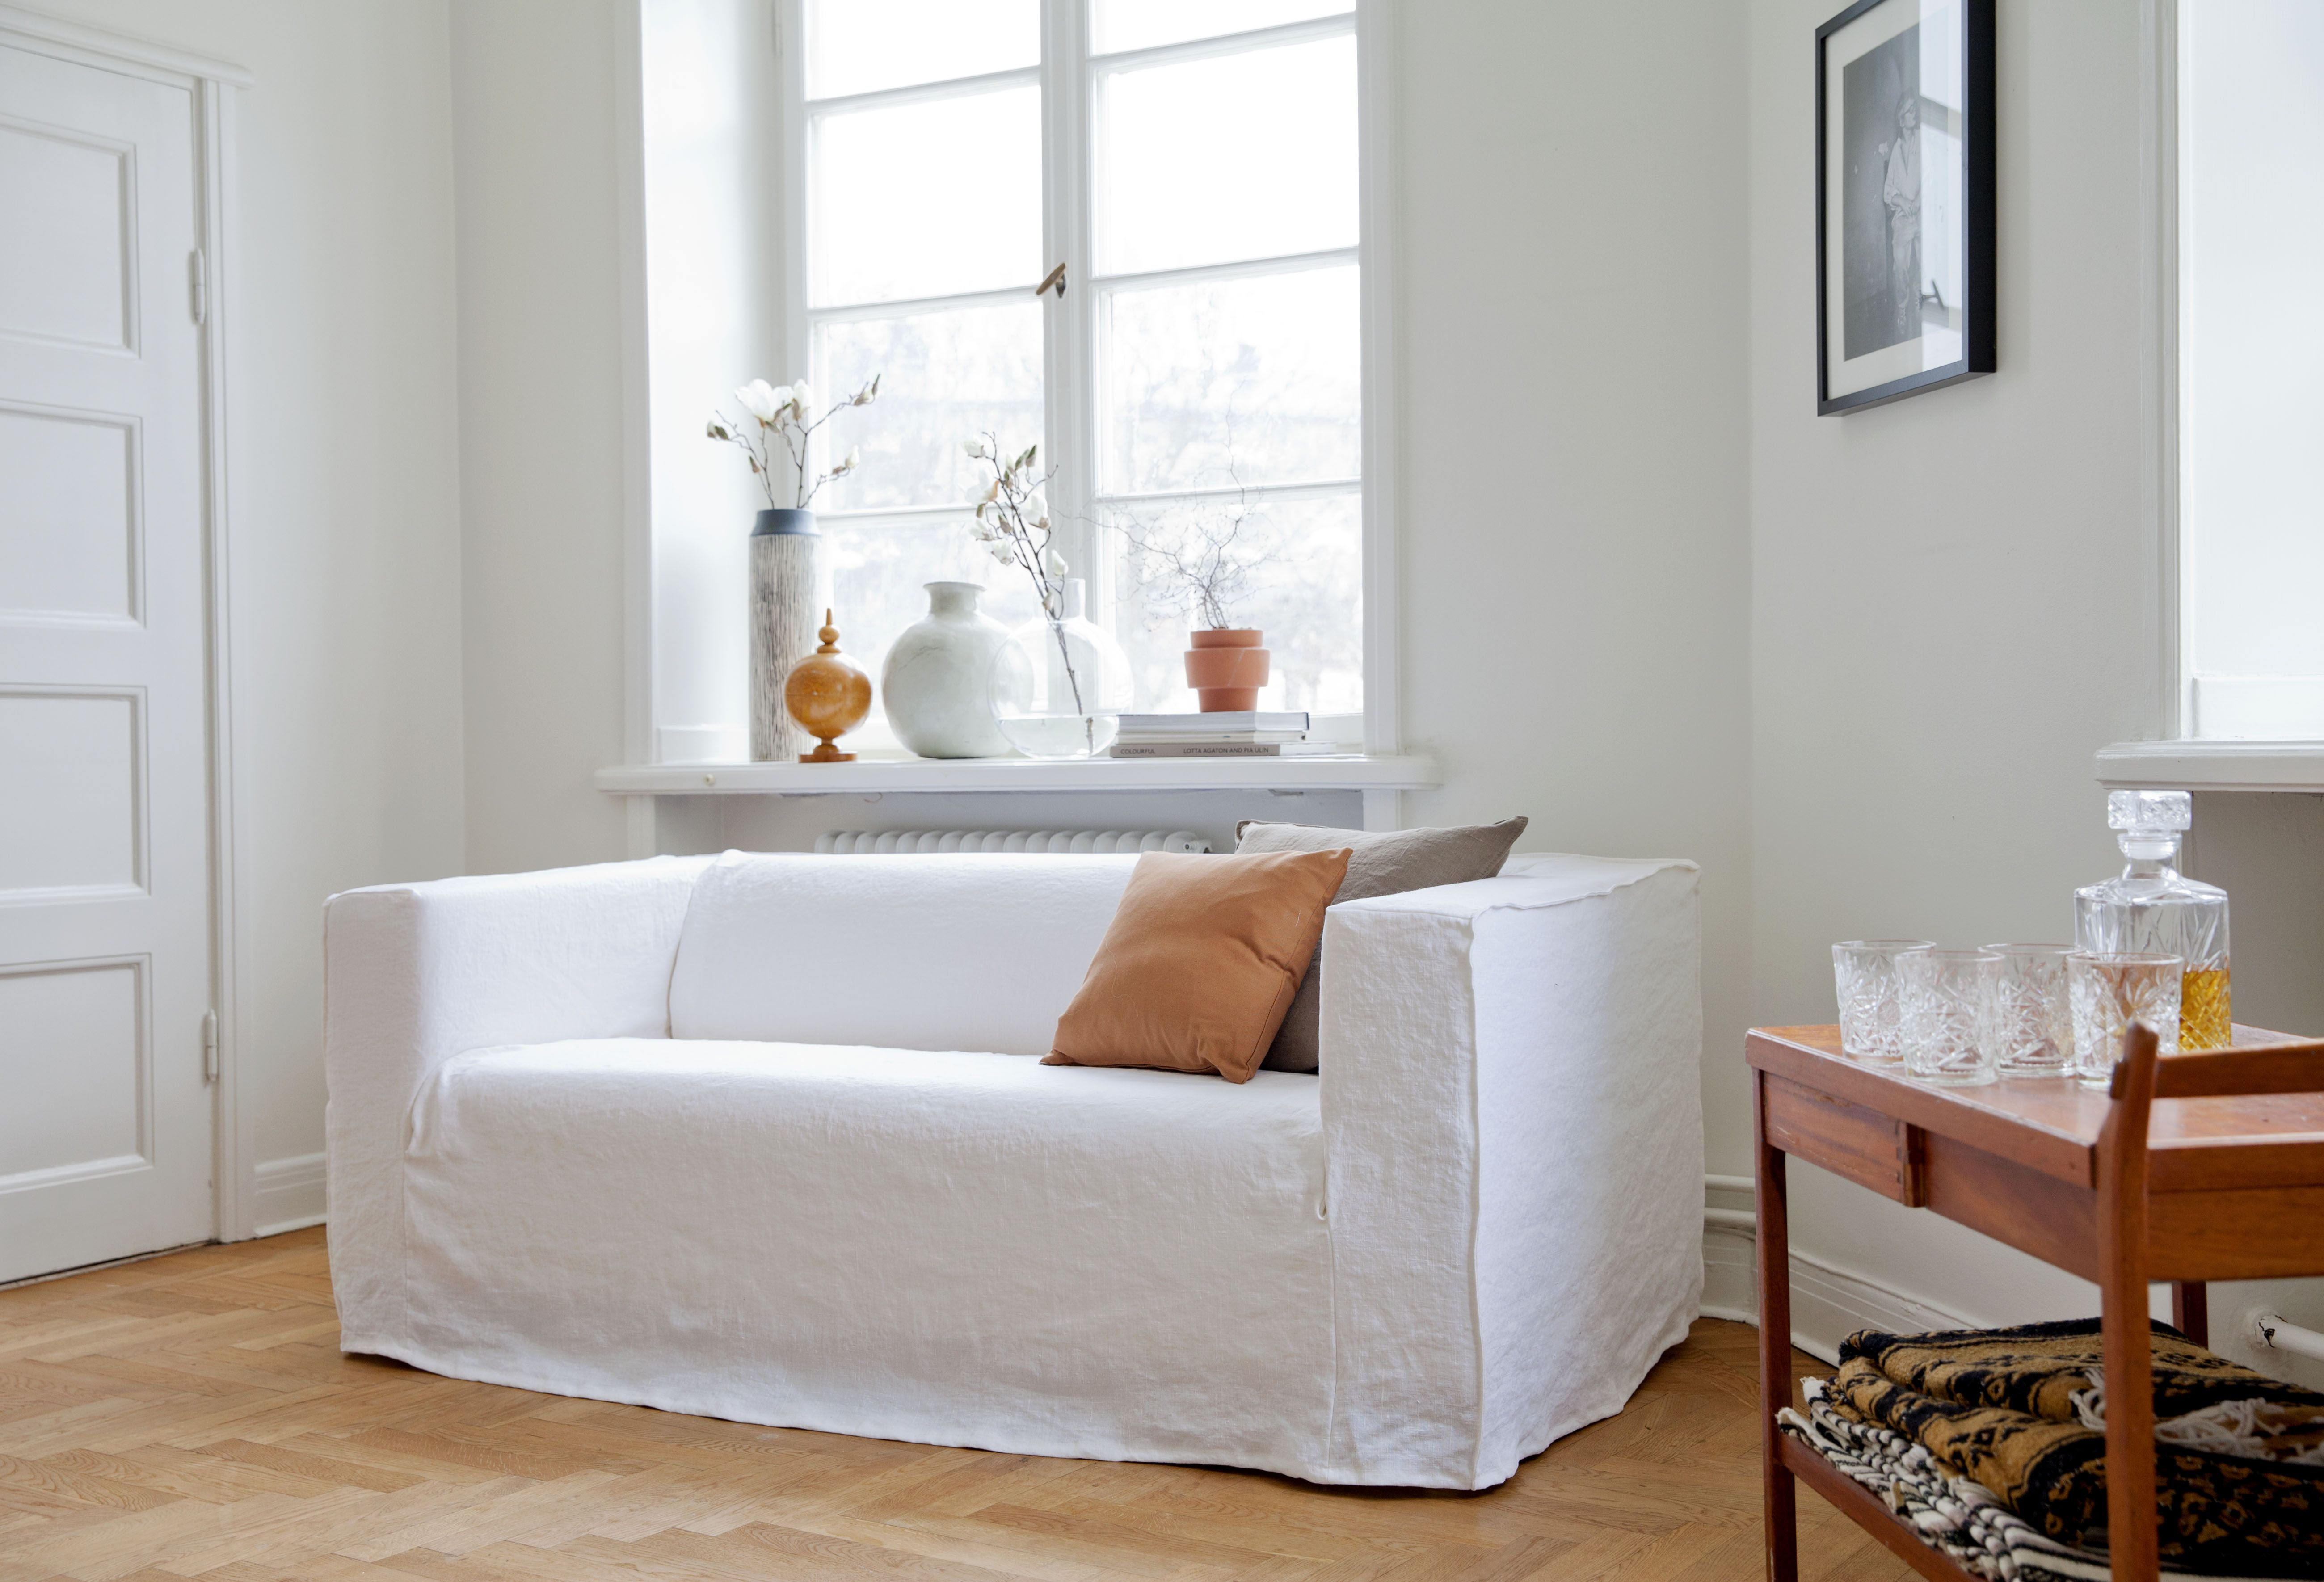 White With Accents Klippan Sofa Cover Loose Fit Urban Stye Absolute White Rosendal Pure Washed Linen Cushion Covers In Chestn Klippan Sofa Covers Ikea Sofa